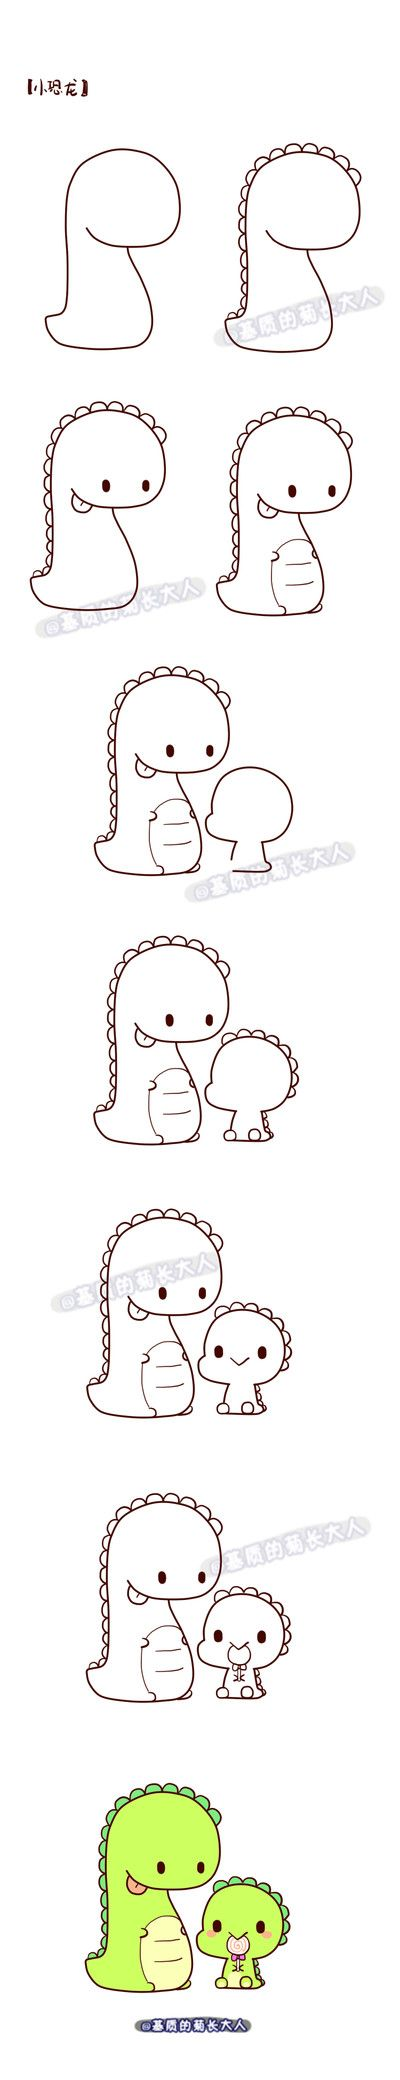 25 best ideas about kawaii doodles on pinterest kawaii for Girly drawings step by step